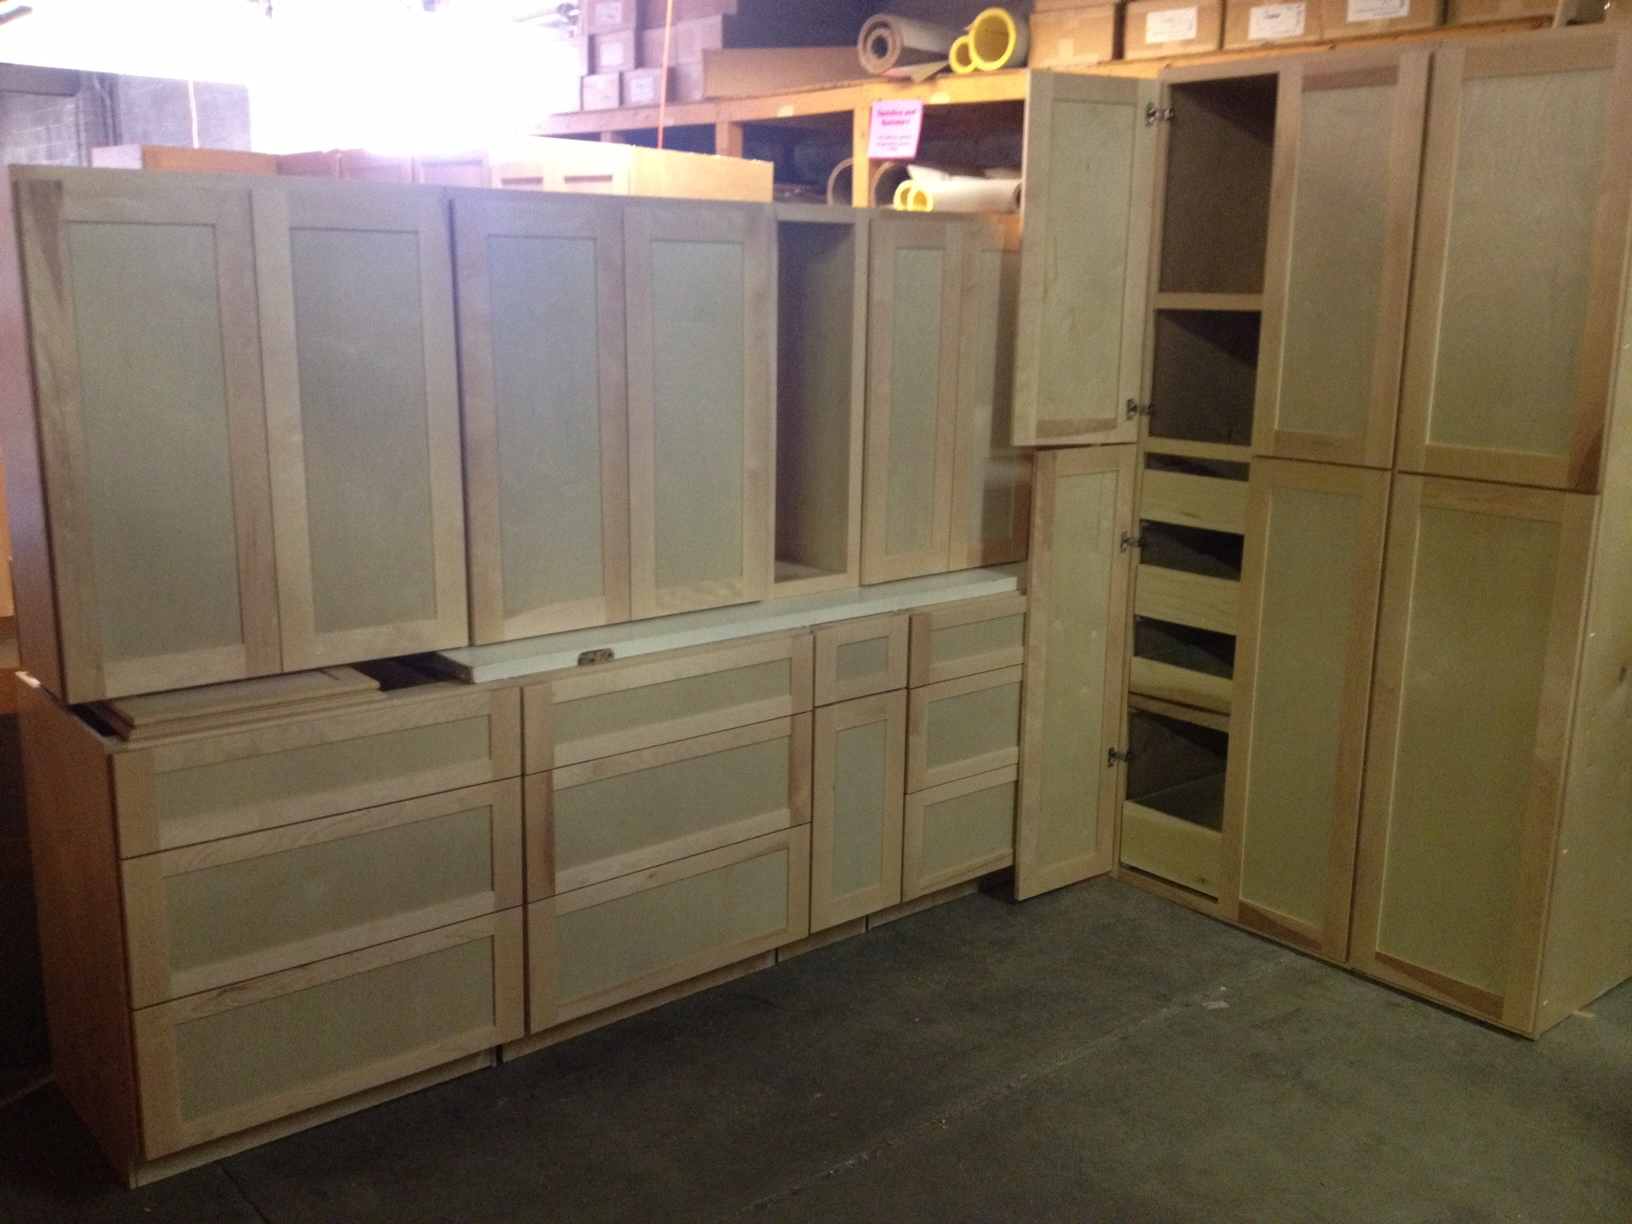 New 12 piece birch cabinet set bud s warehouse for Shaker style kitchen cabinets manufacturers